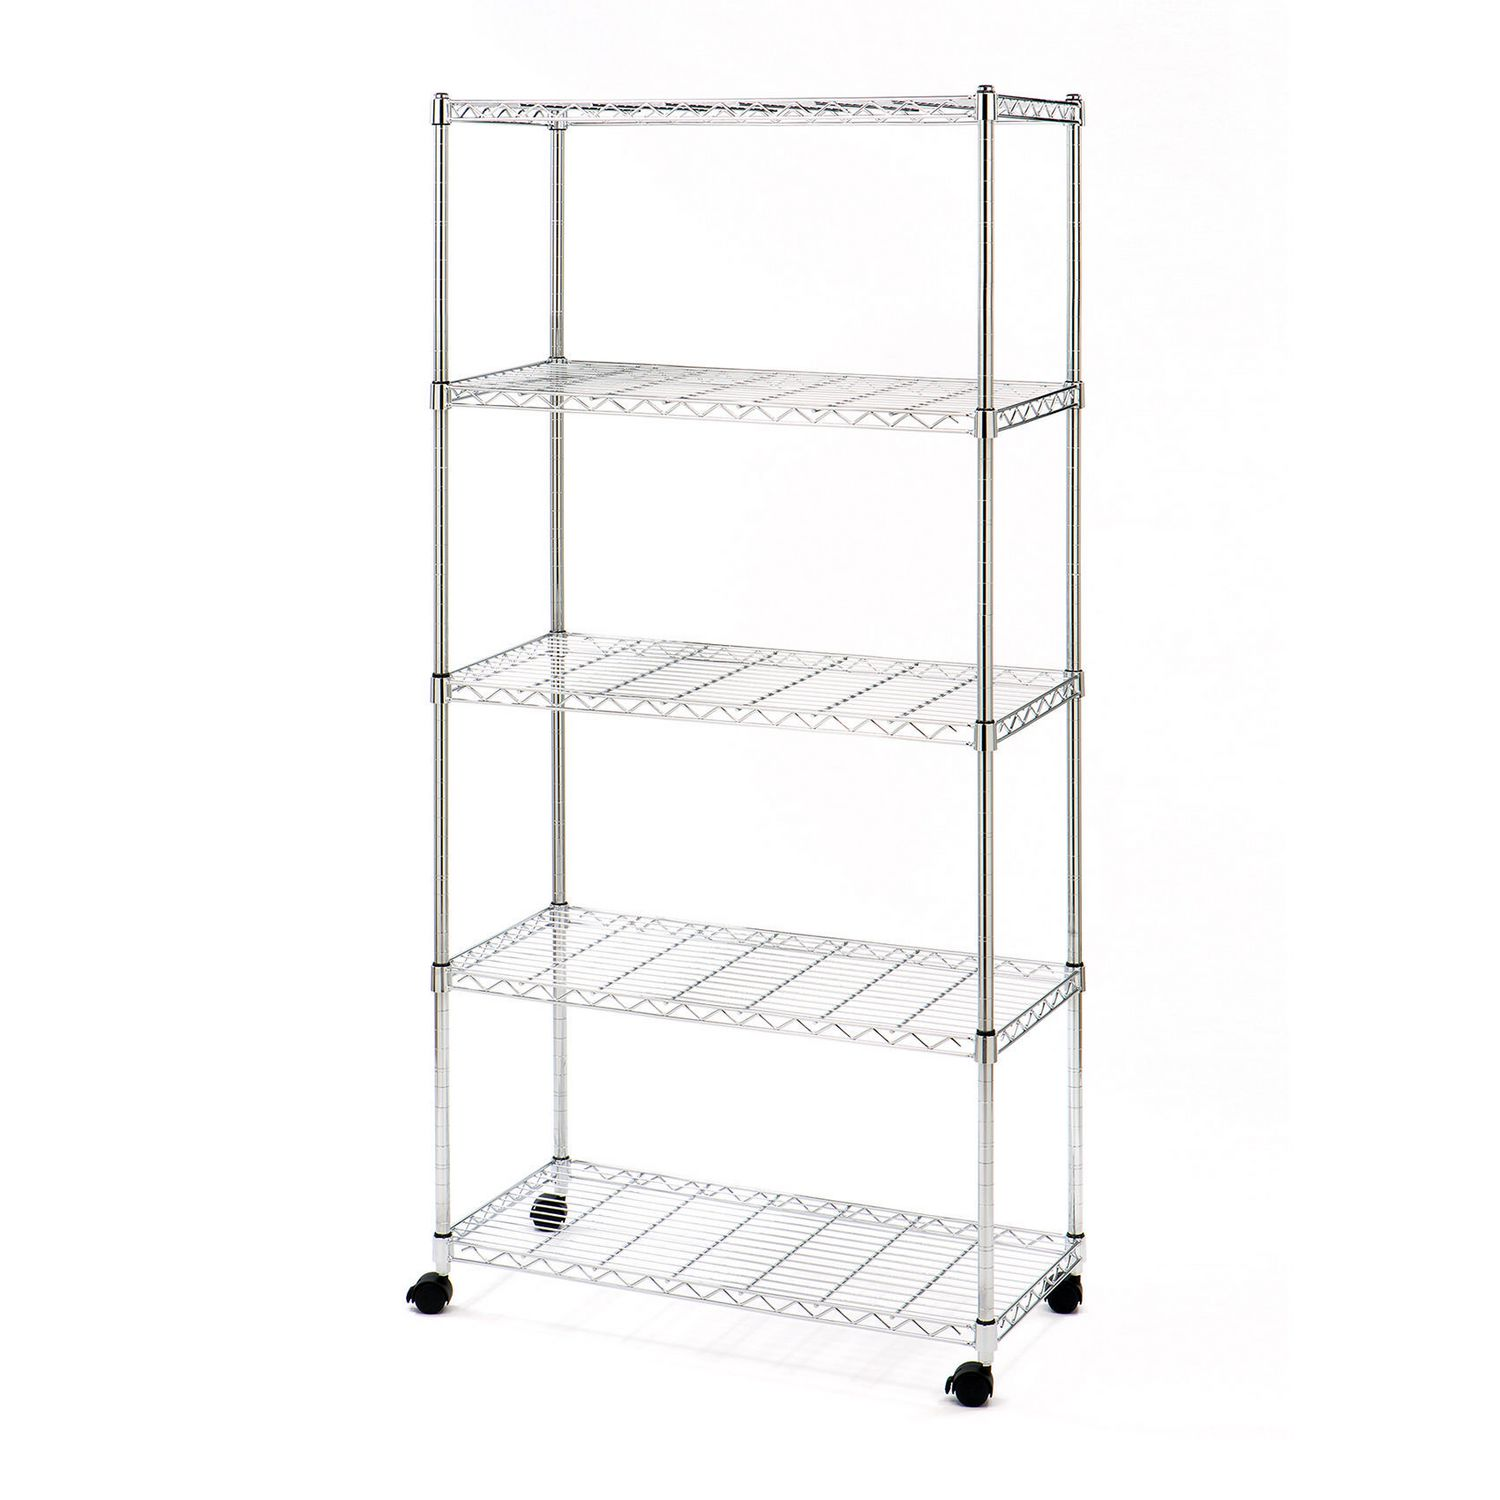 Walmart Shelving | Walmart Grill Gazebo with Shelves | Freezer Shelves Walmart